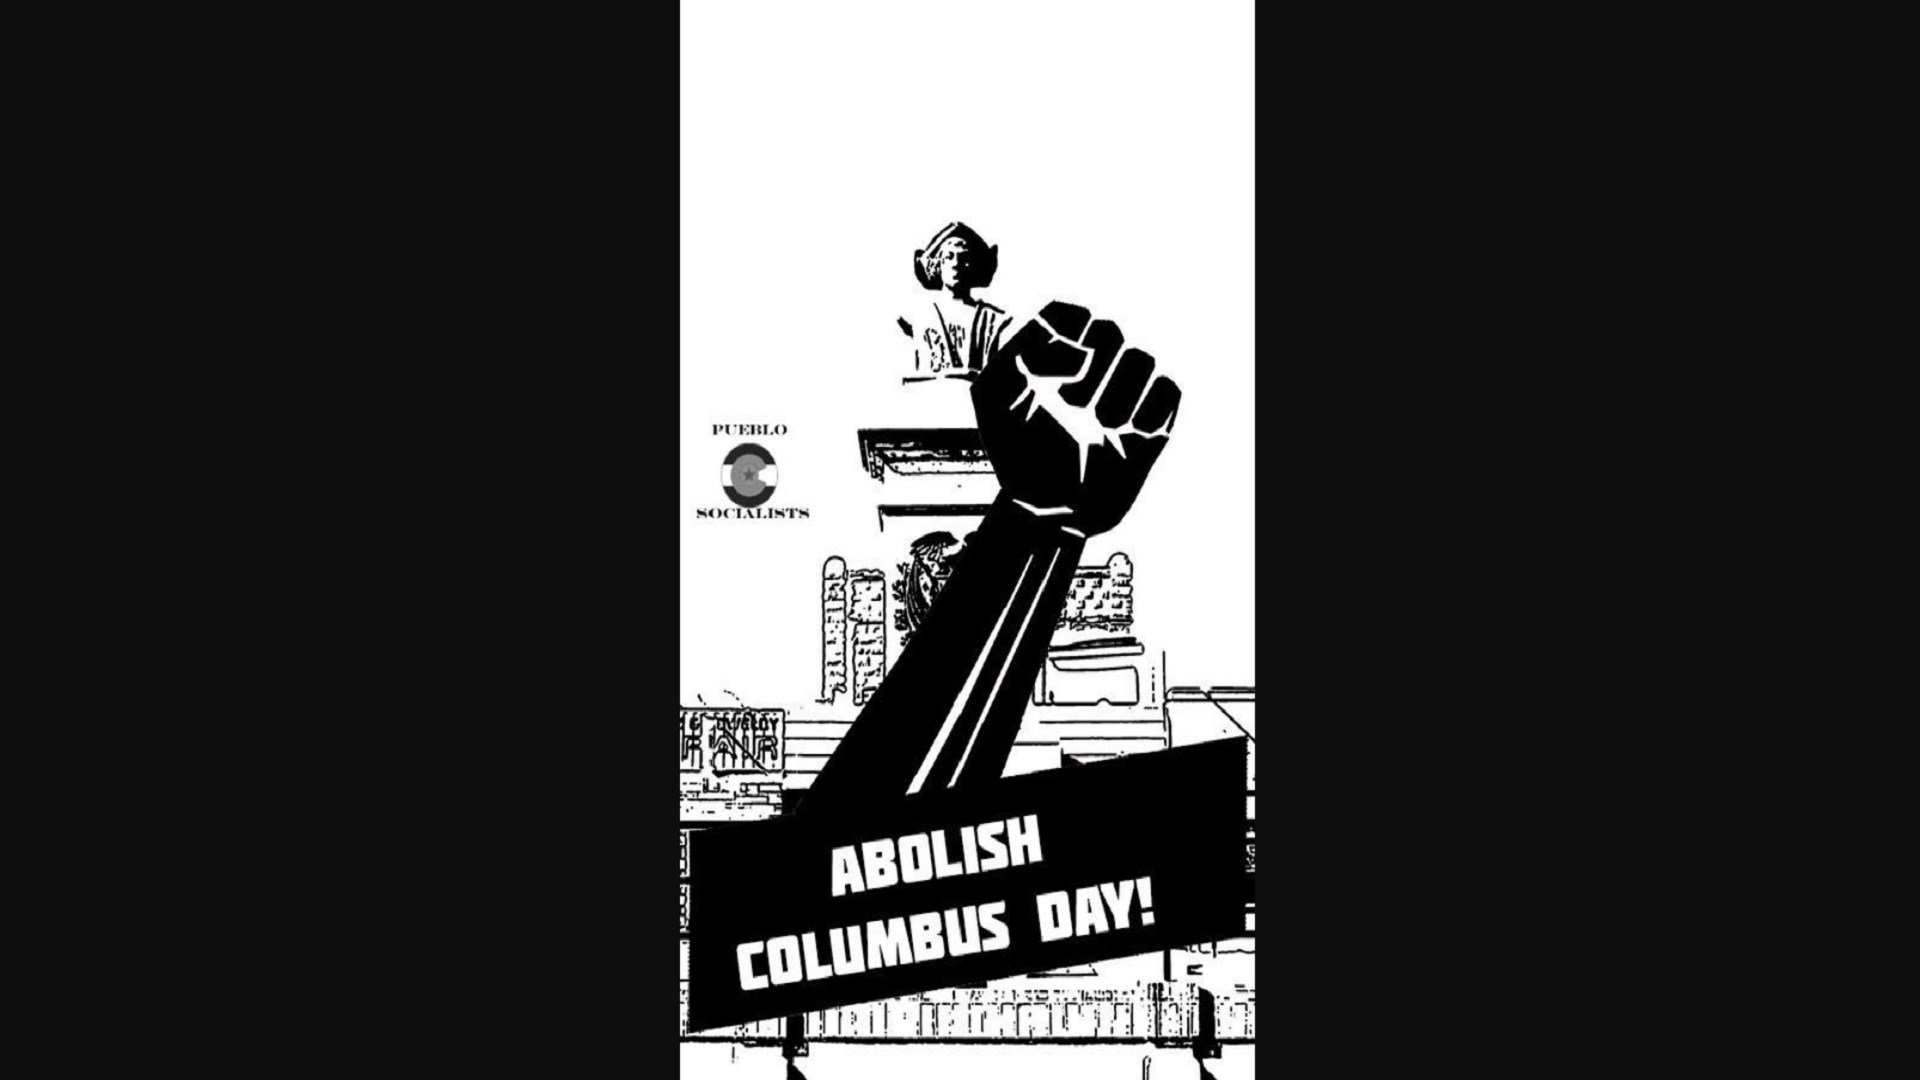 why abolish columbus day